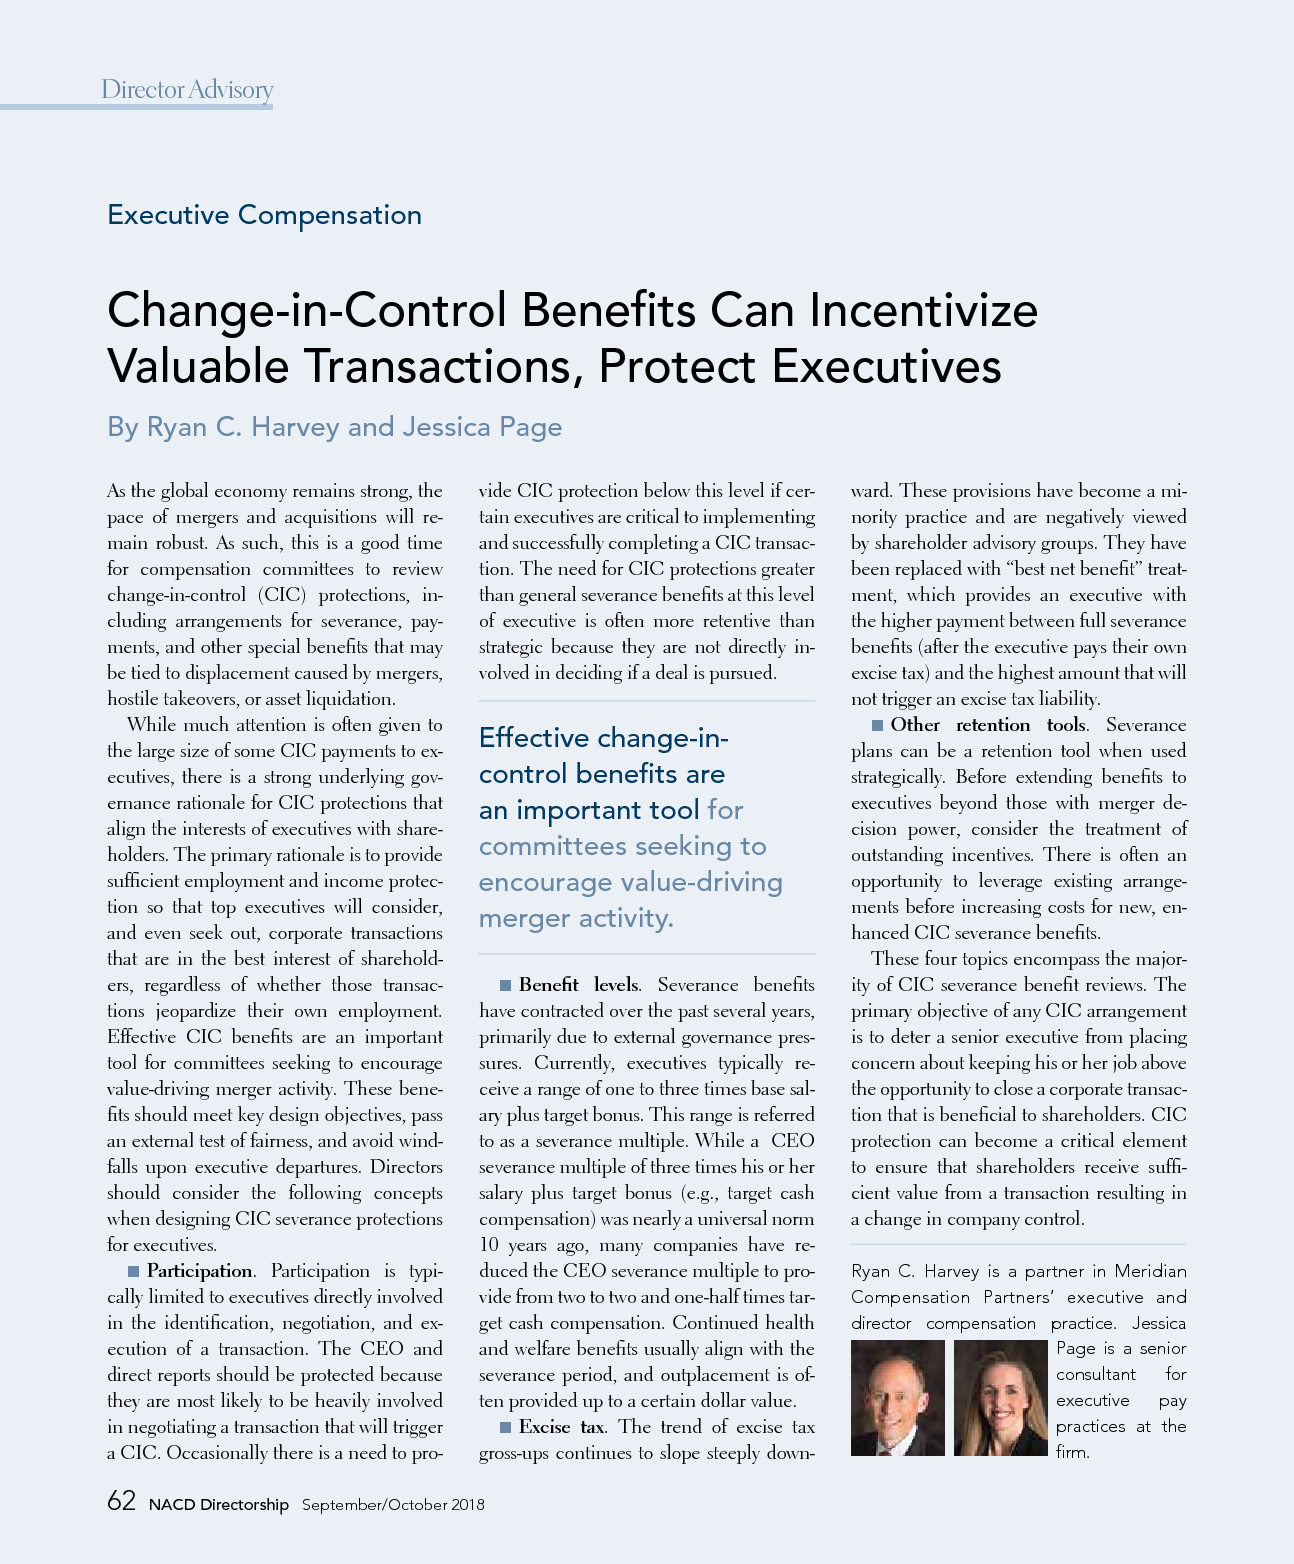 Change-in-Control Benefits Can Incentivize Valuable Transactions, Protect Executives (PDF)